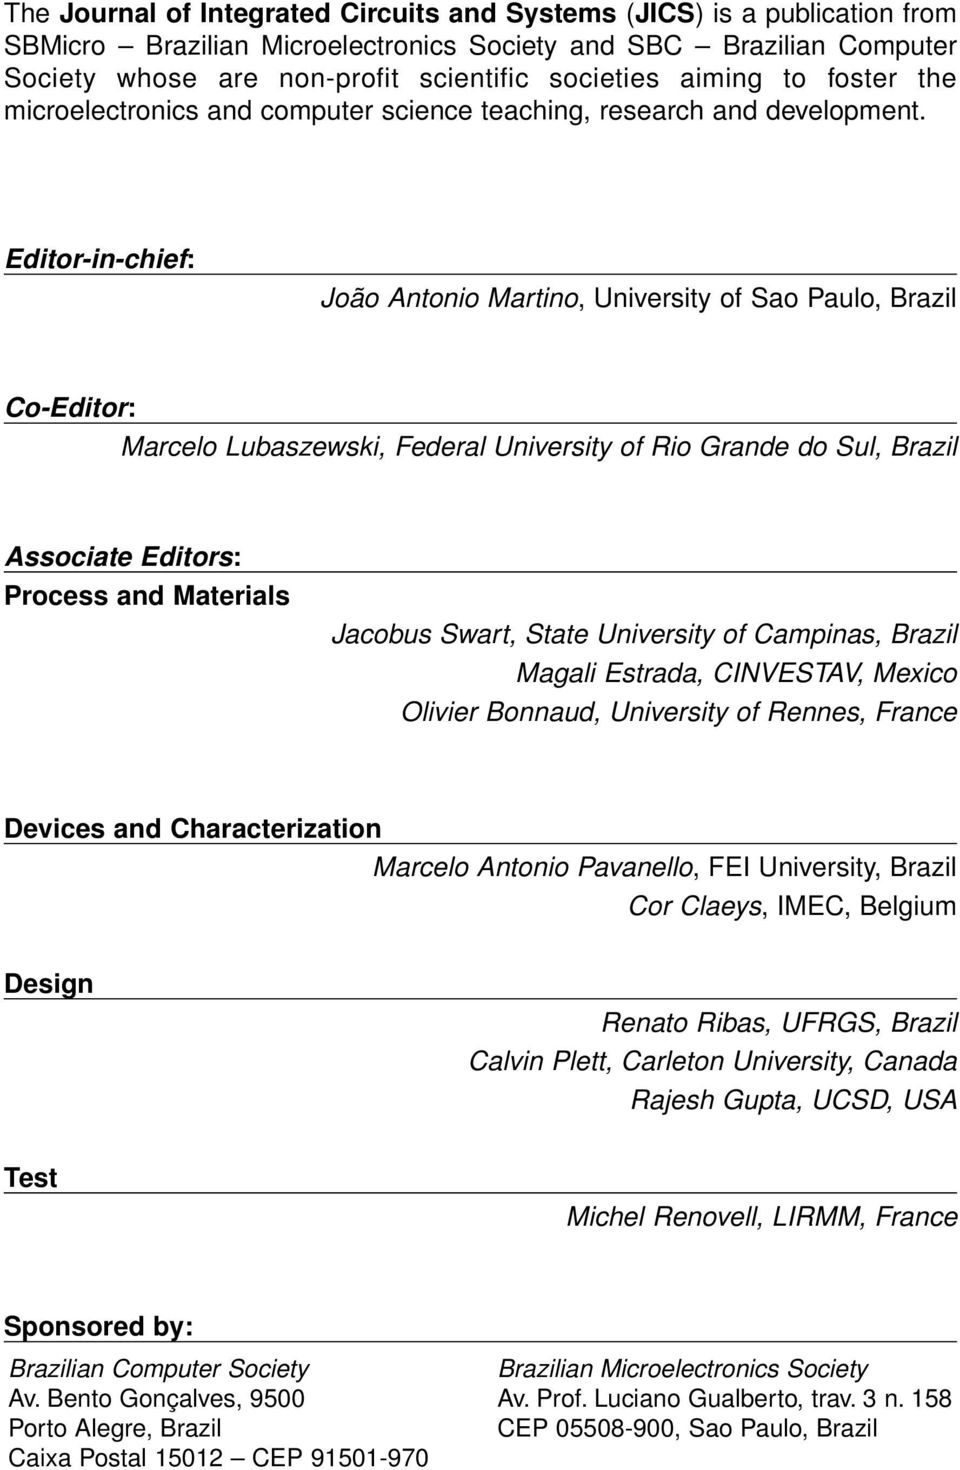 Editor-in-chief: João Antonio Martino, University of Sao Paulo, Brazil Co-Editor: Marcelo Lubaszewski, Federal University of Rio Grande do Sul, Brazil Associate Editors: Process and Materials Jacobus